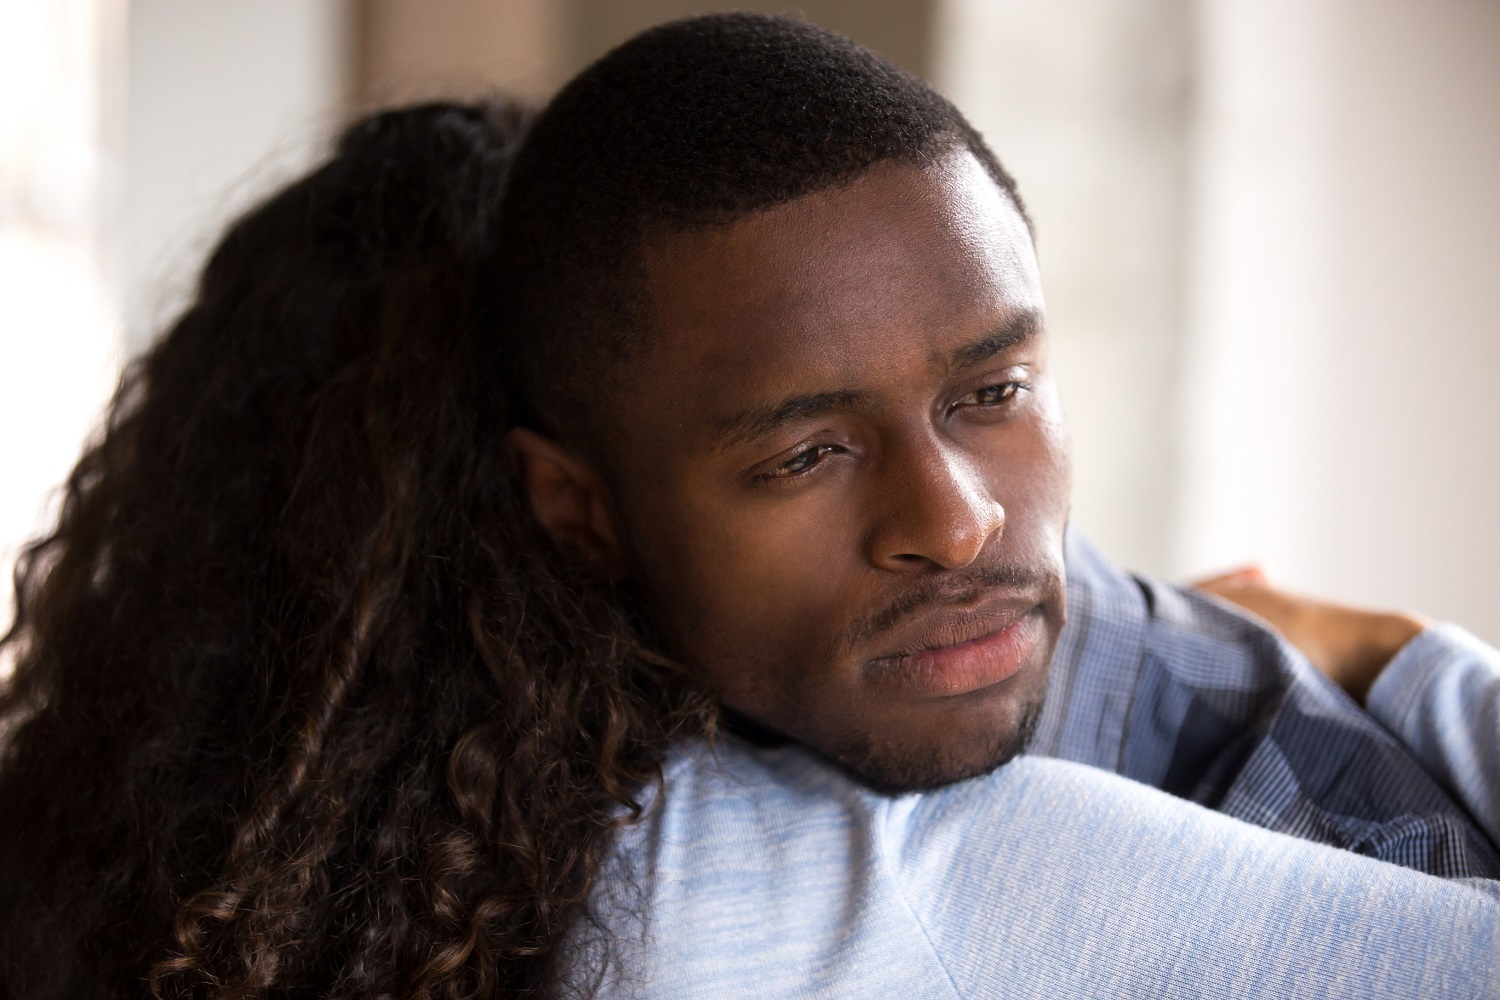 How to ensure African American Men protect their mental health in times of injustice